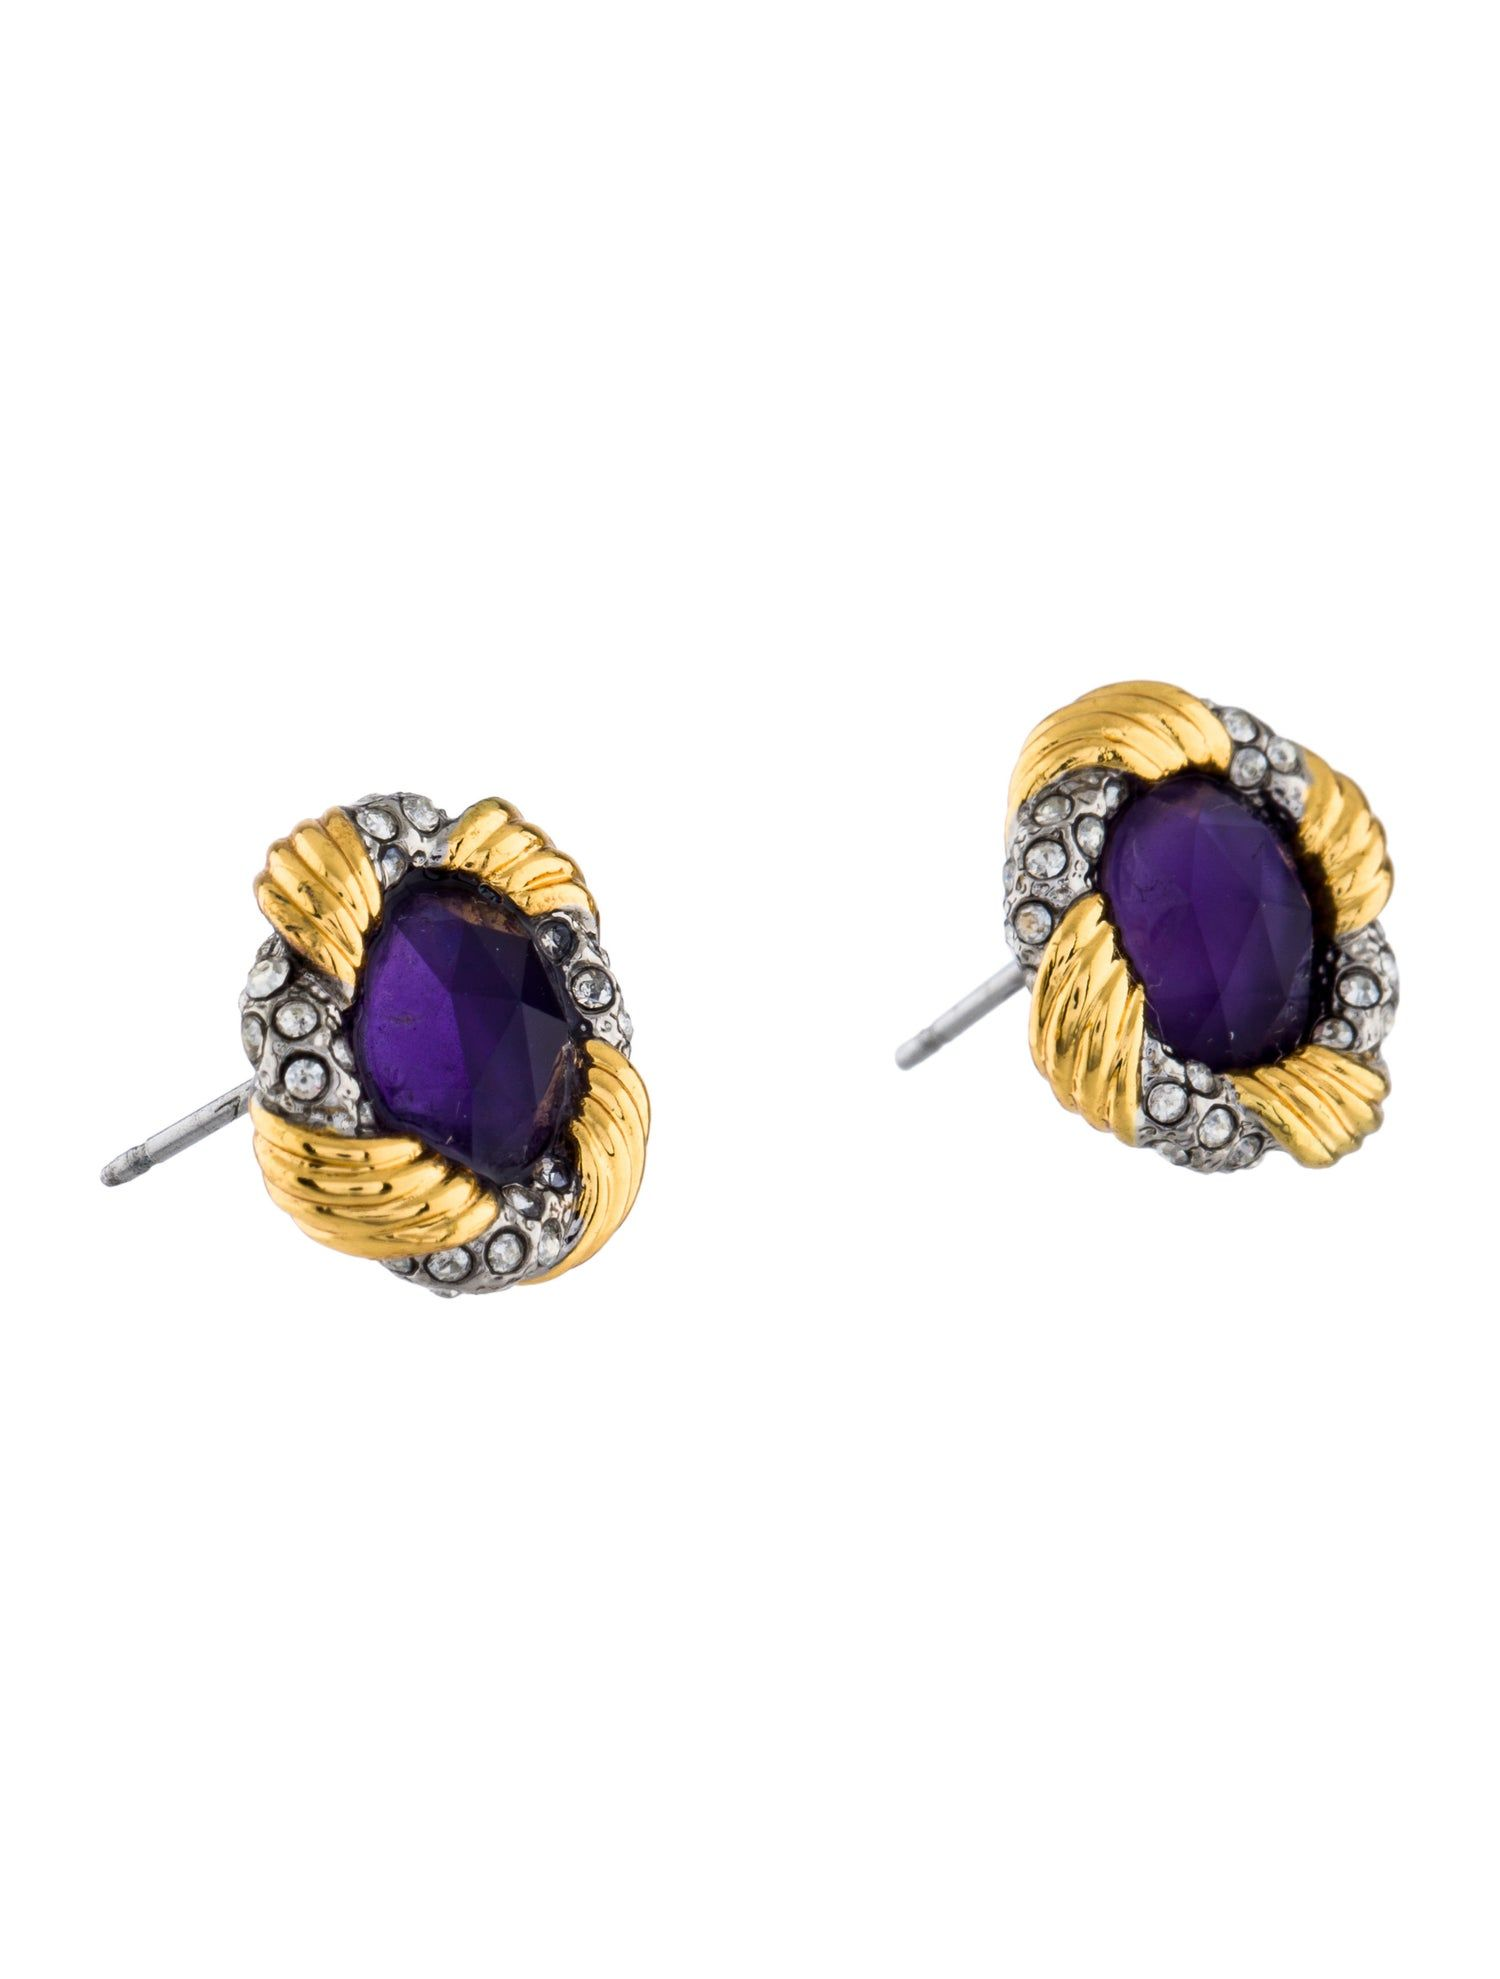 Alexis Bittar Crystal Stud Earrings Sponsored Bittar Alexis